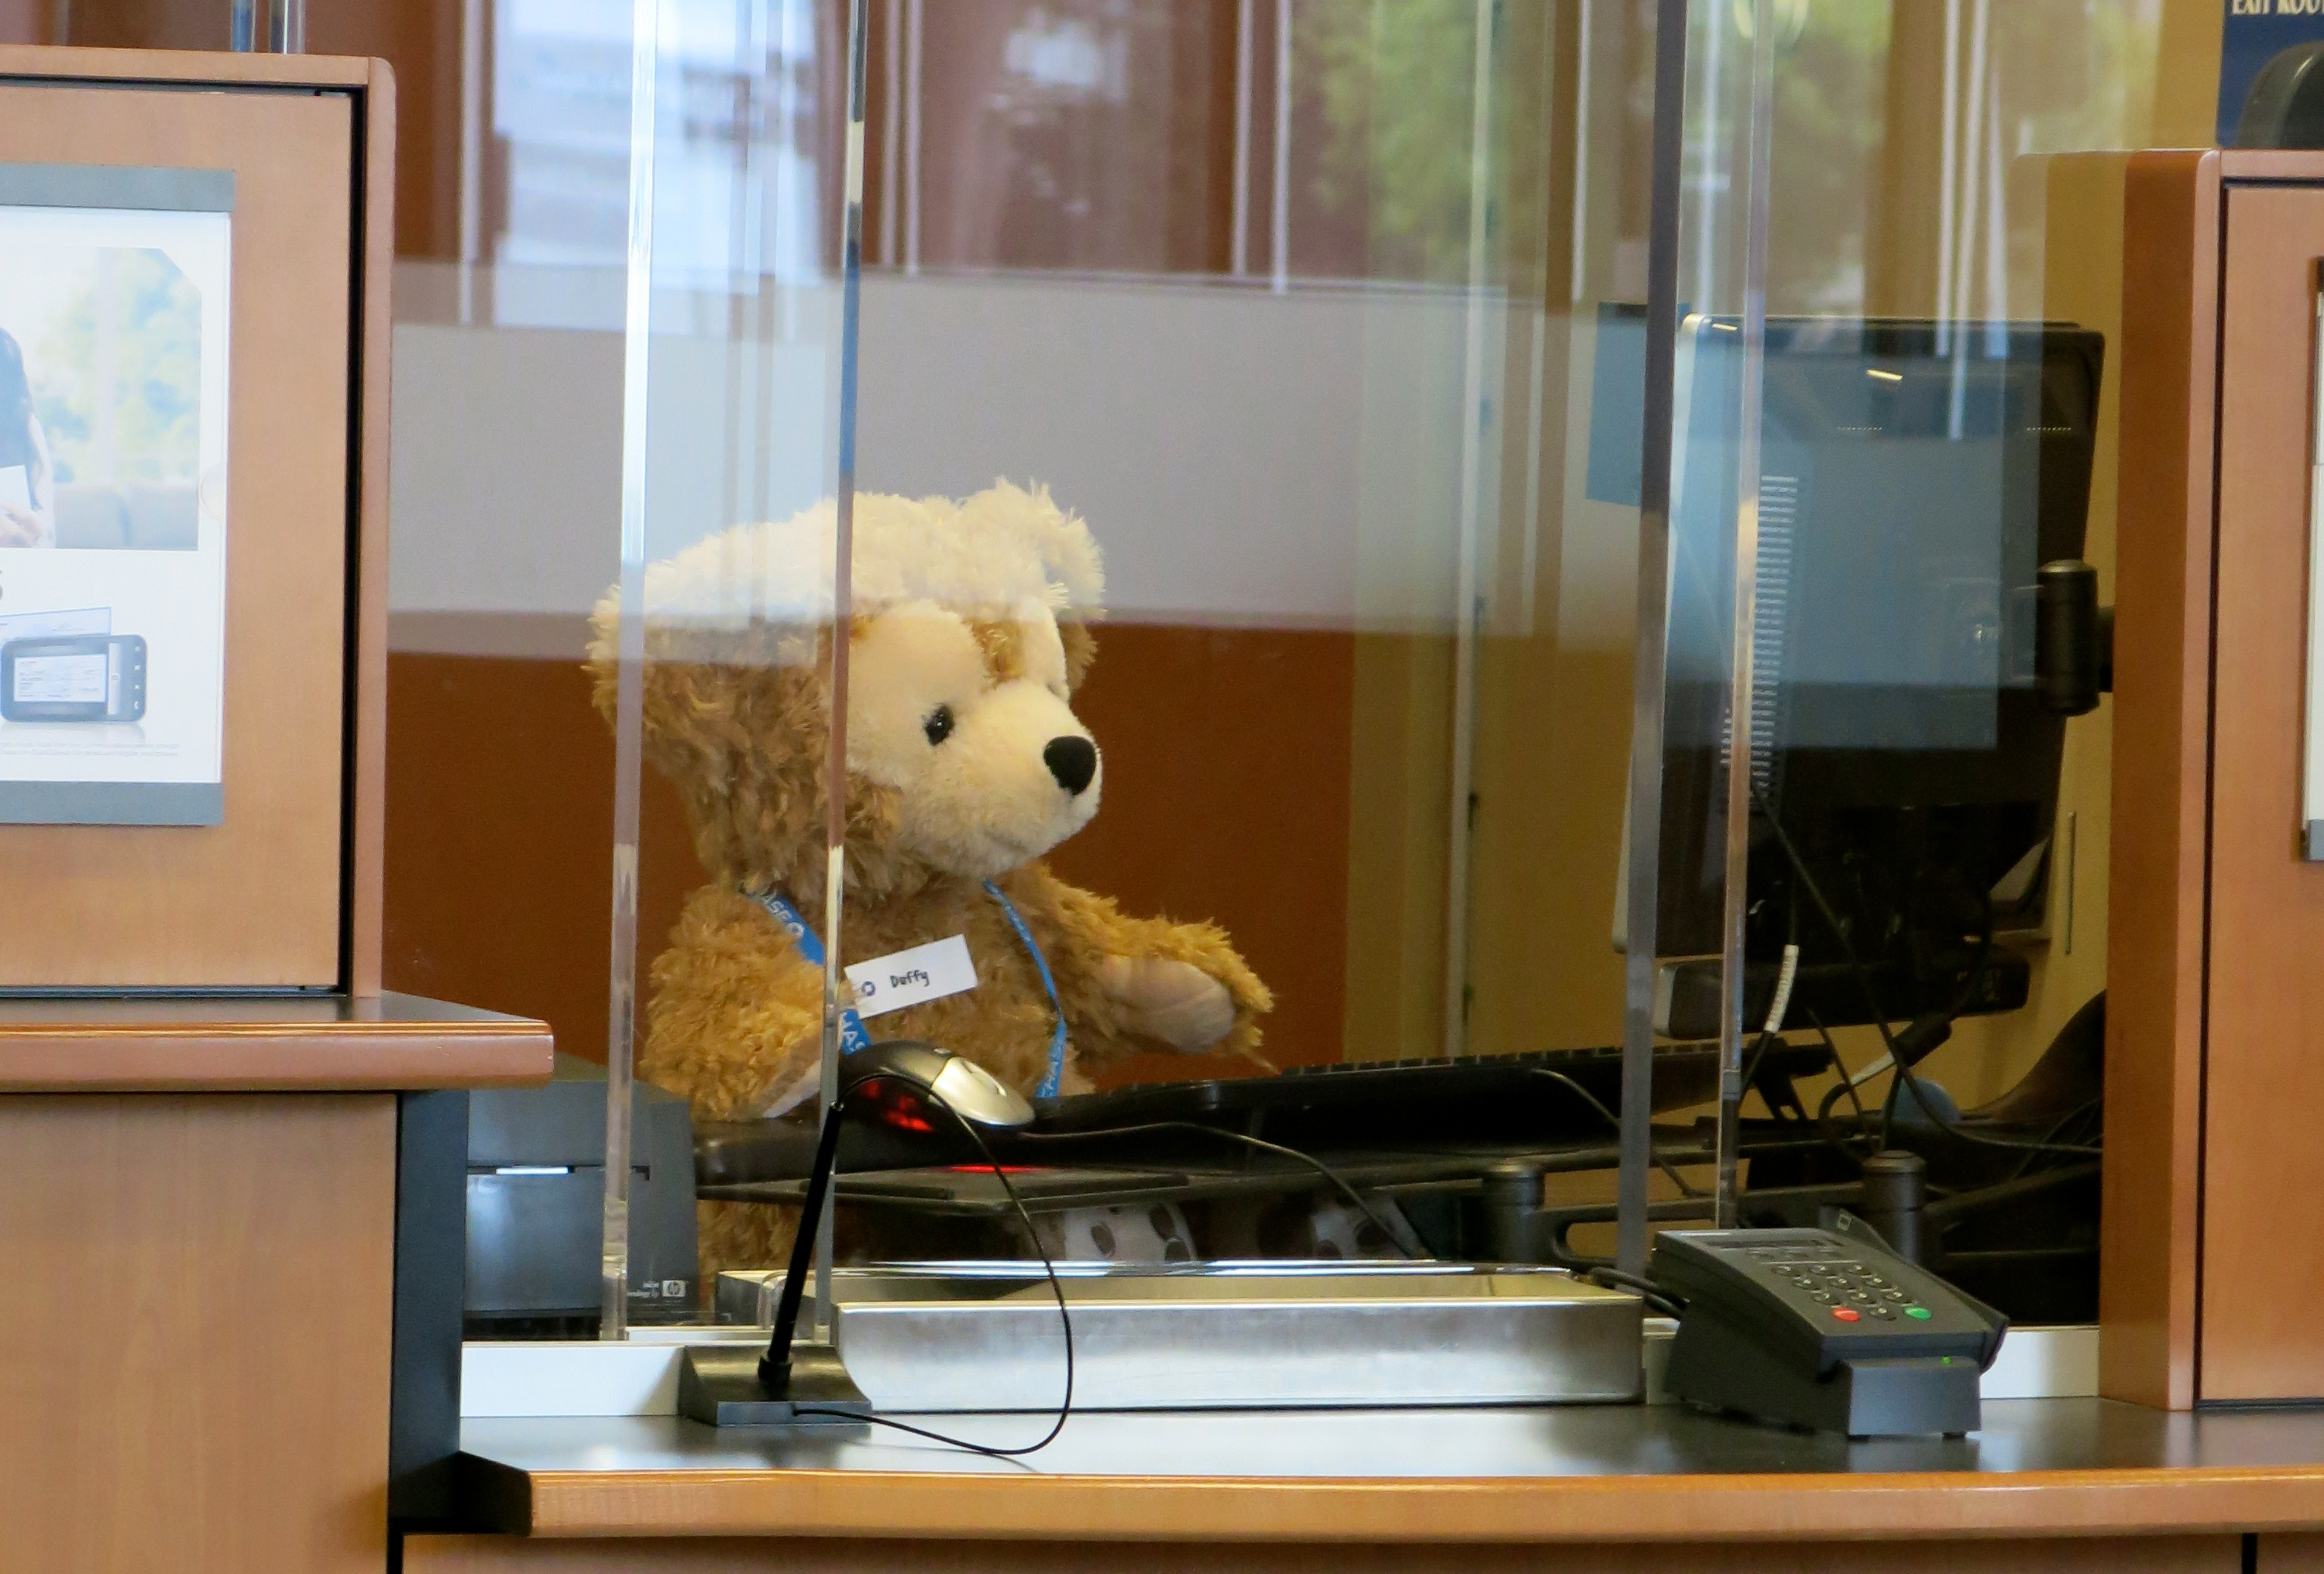 Caption: A new trainee works at a bank teller computer waiting for a new customer., Credit: Torbakopper/Flickr